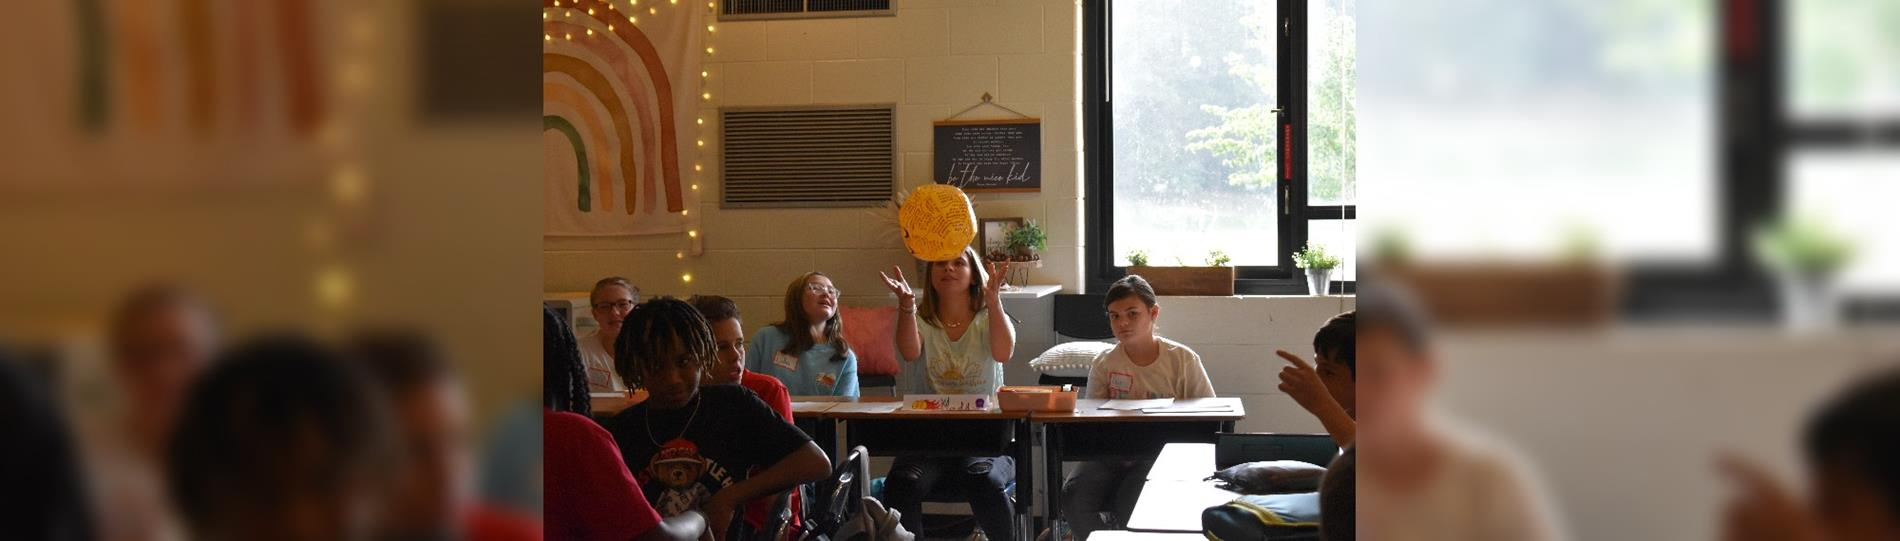 7th graders play a game on the 1st day of school